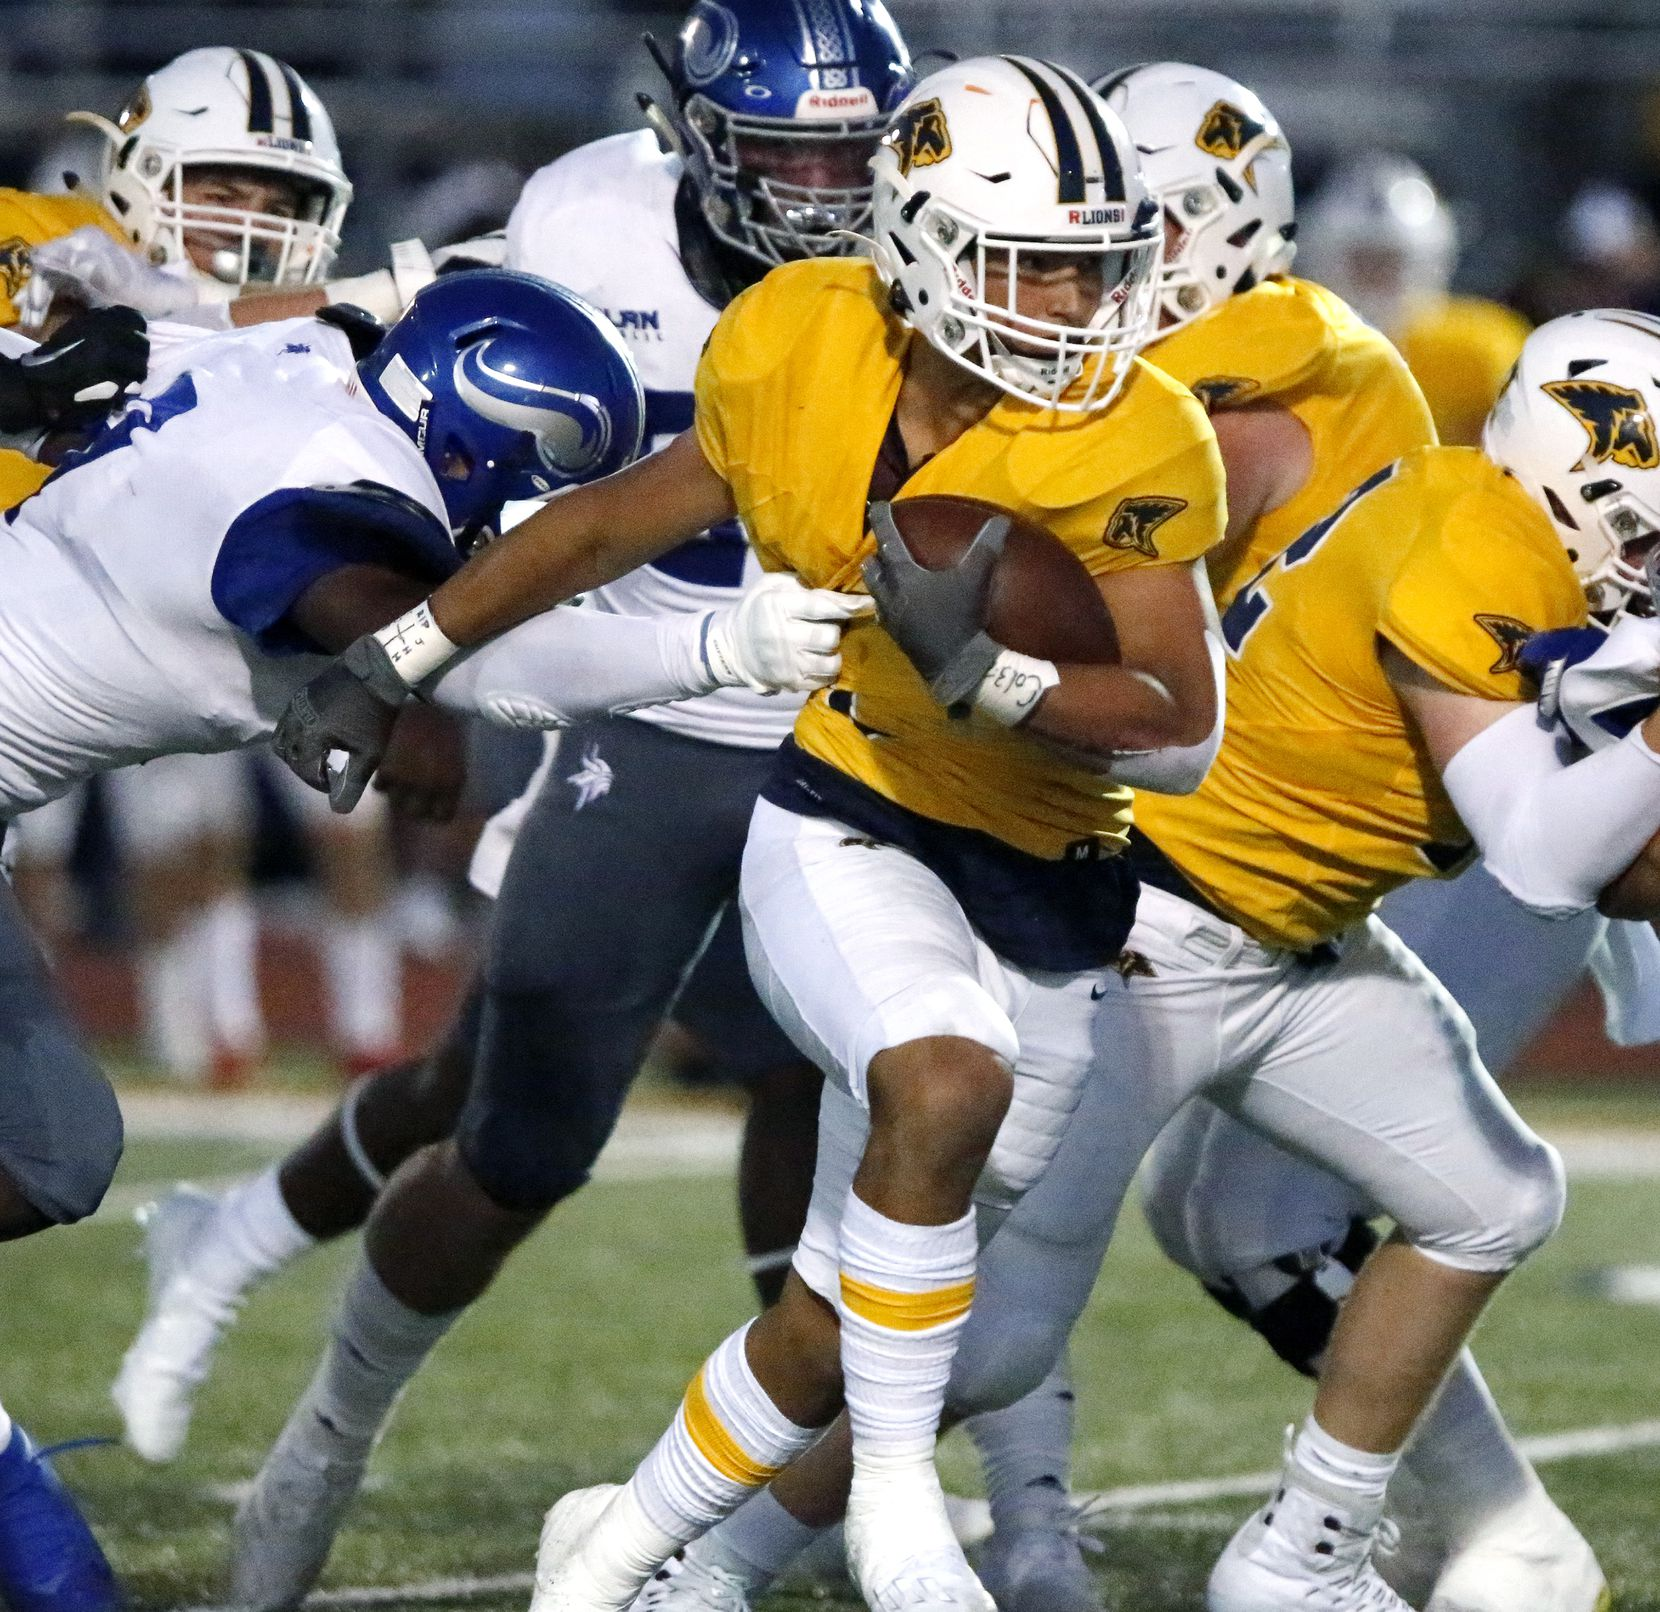 Prestonwood Christian Academy wide receiver Randell Holmes (7) is held up by the jersey as Nolan Catholic High School defensive end Curlee Thomas (9) was able to slow down the ball carrier during the first half as Prestonwood Christian Academy hosted Nolan Catholic High School at Lions Stadium in Plano on Friday night, October 9, 2020. (Stewart F. House/Special Contributor)